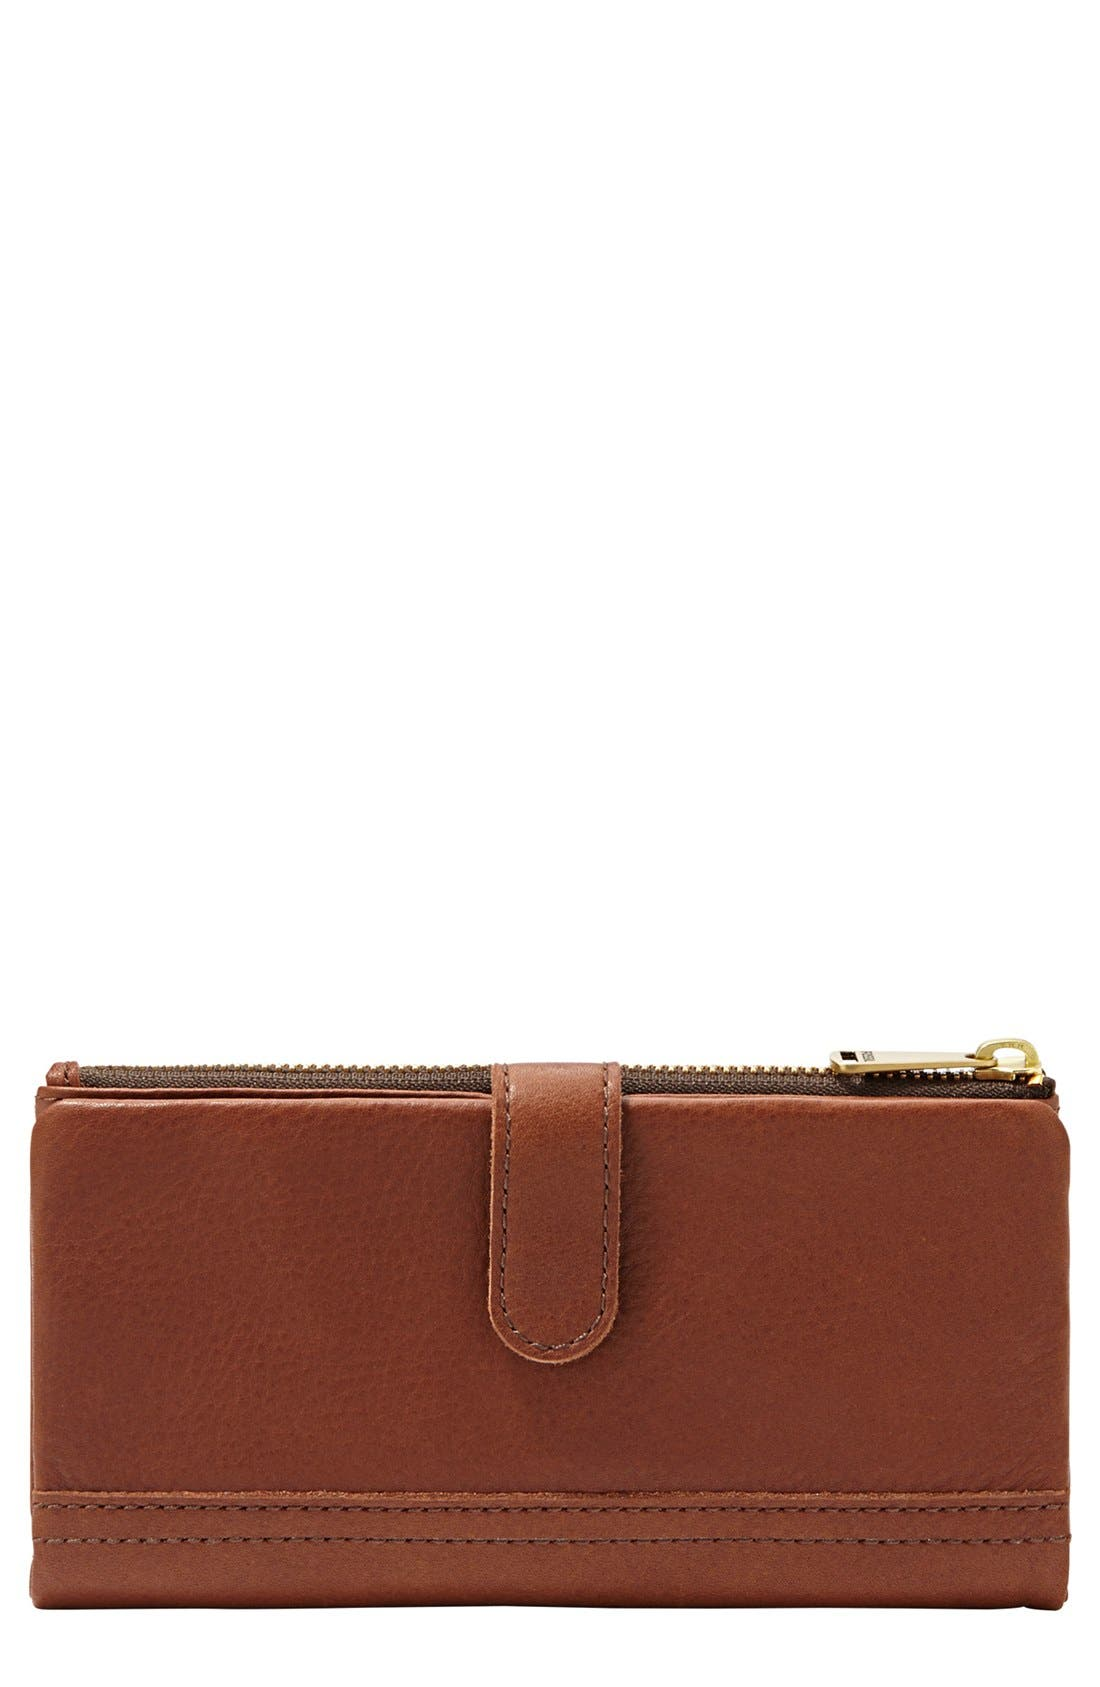 Main Image - Fossil 'Erin' Tab Clutch